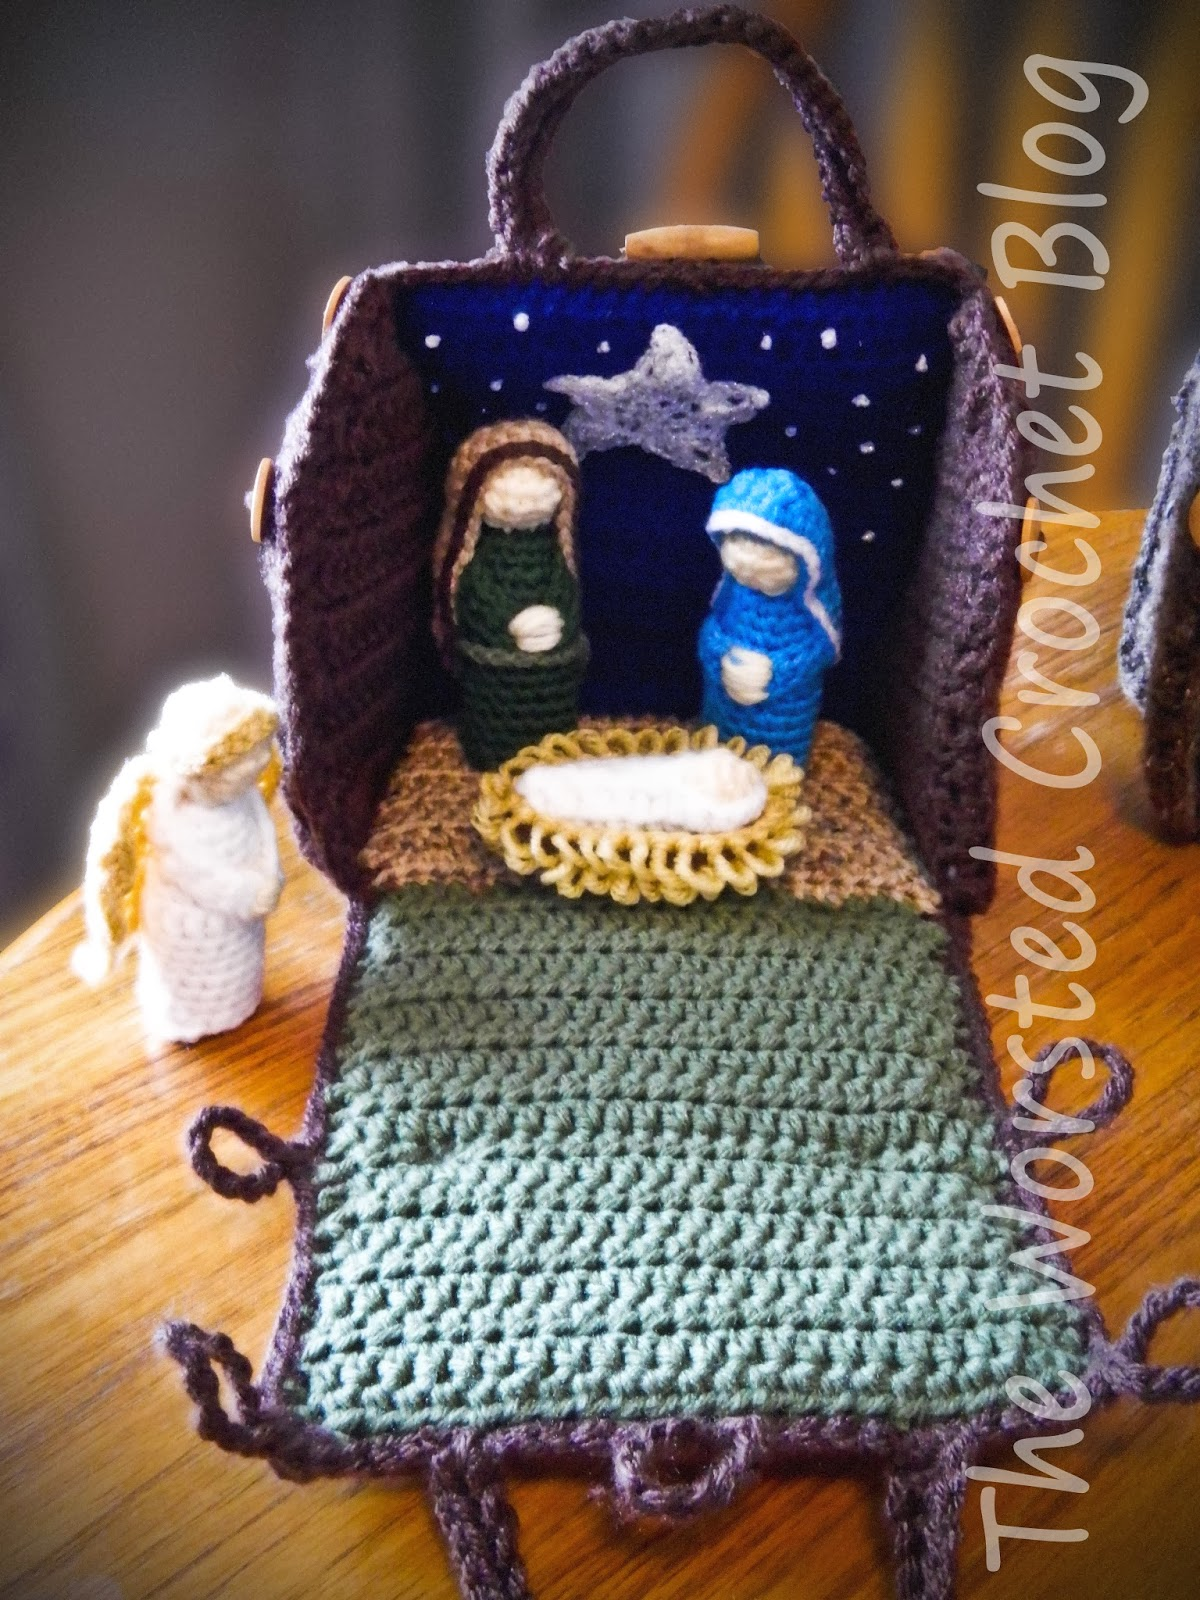 Crochet Patterns Nativity Scene : The Worsted Crochet Blog: Crochet Nativity Set (Part 2 ...